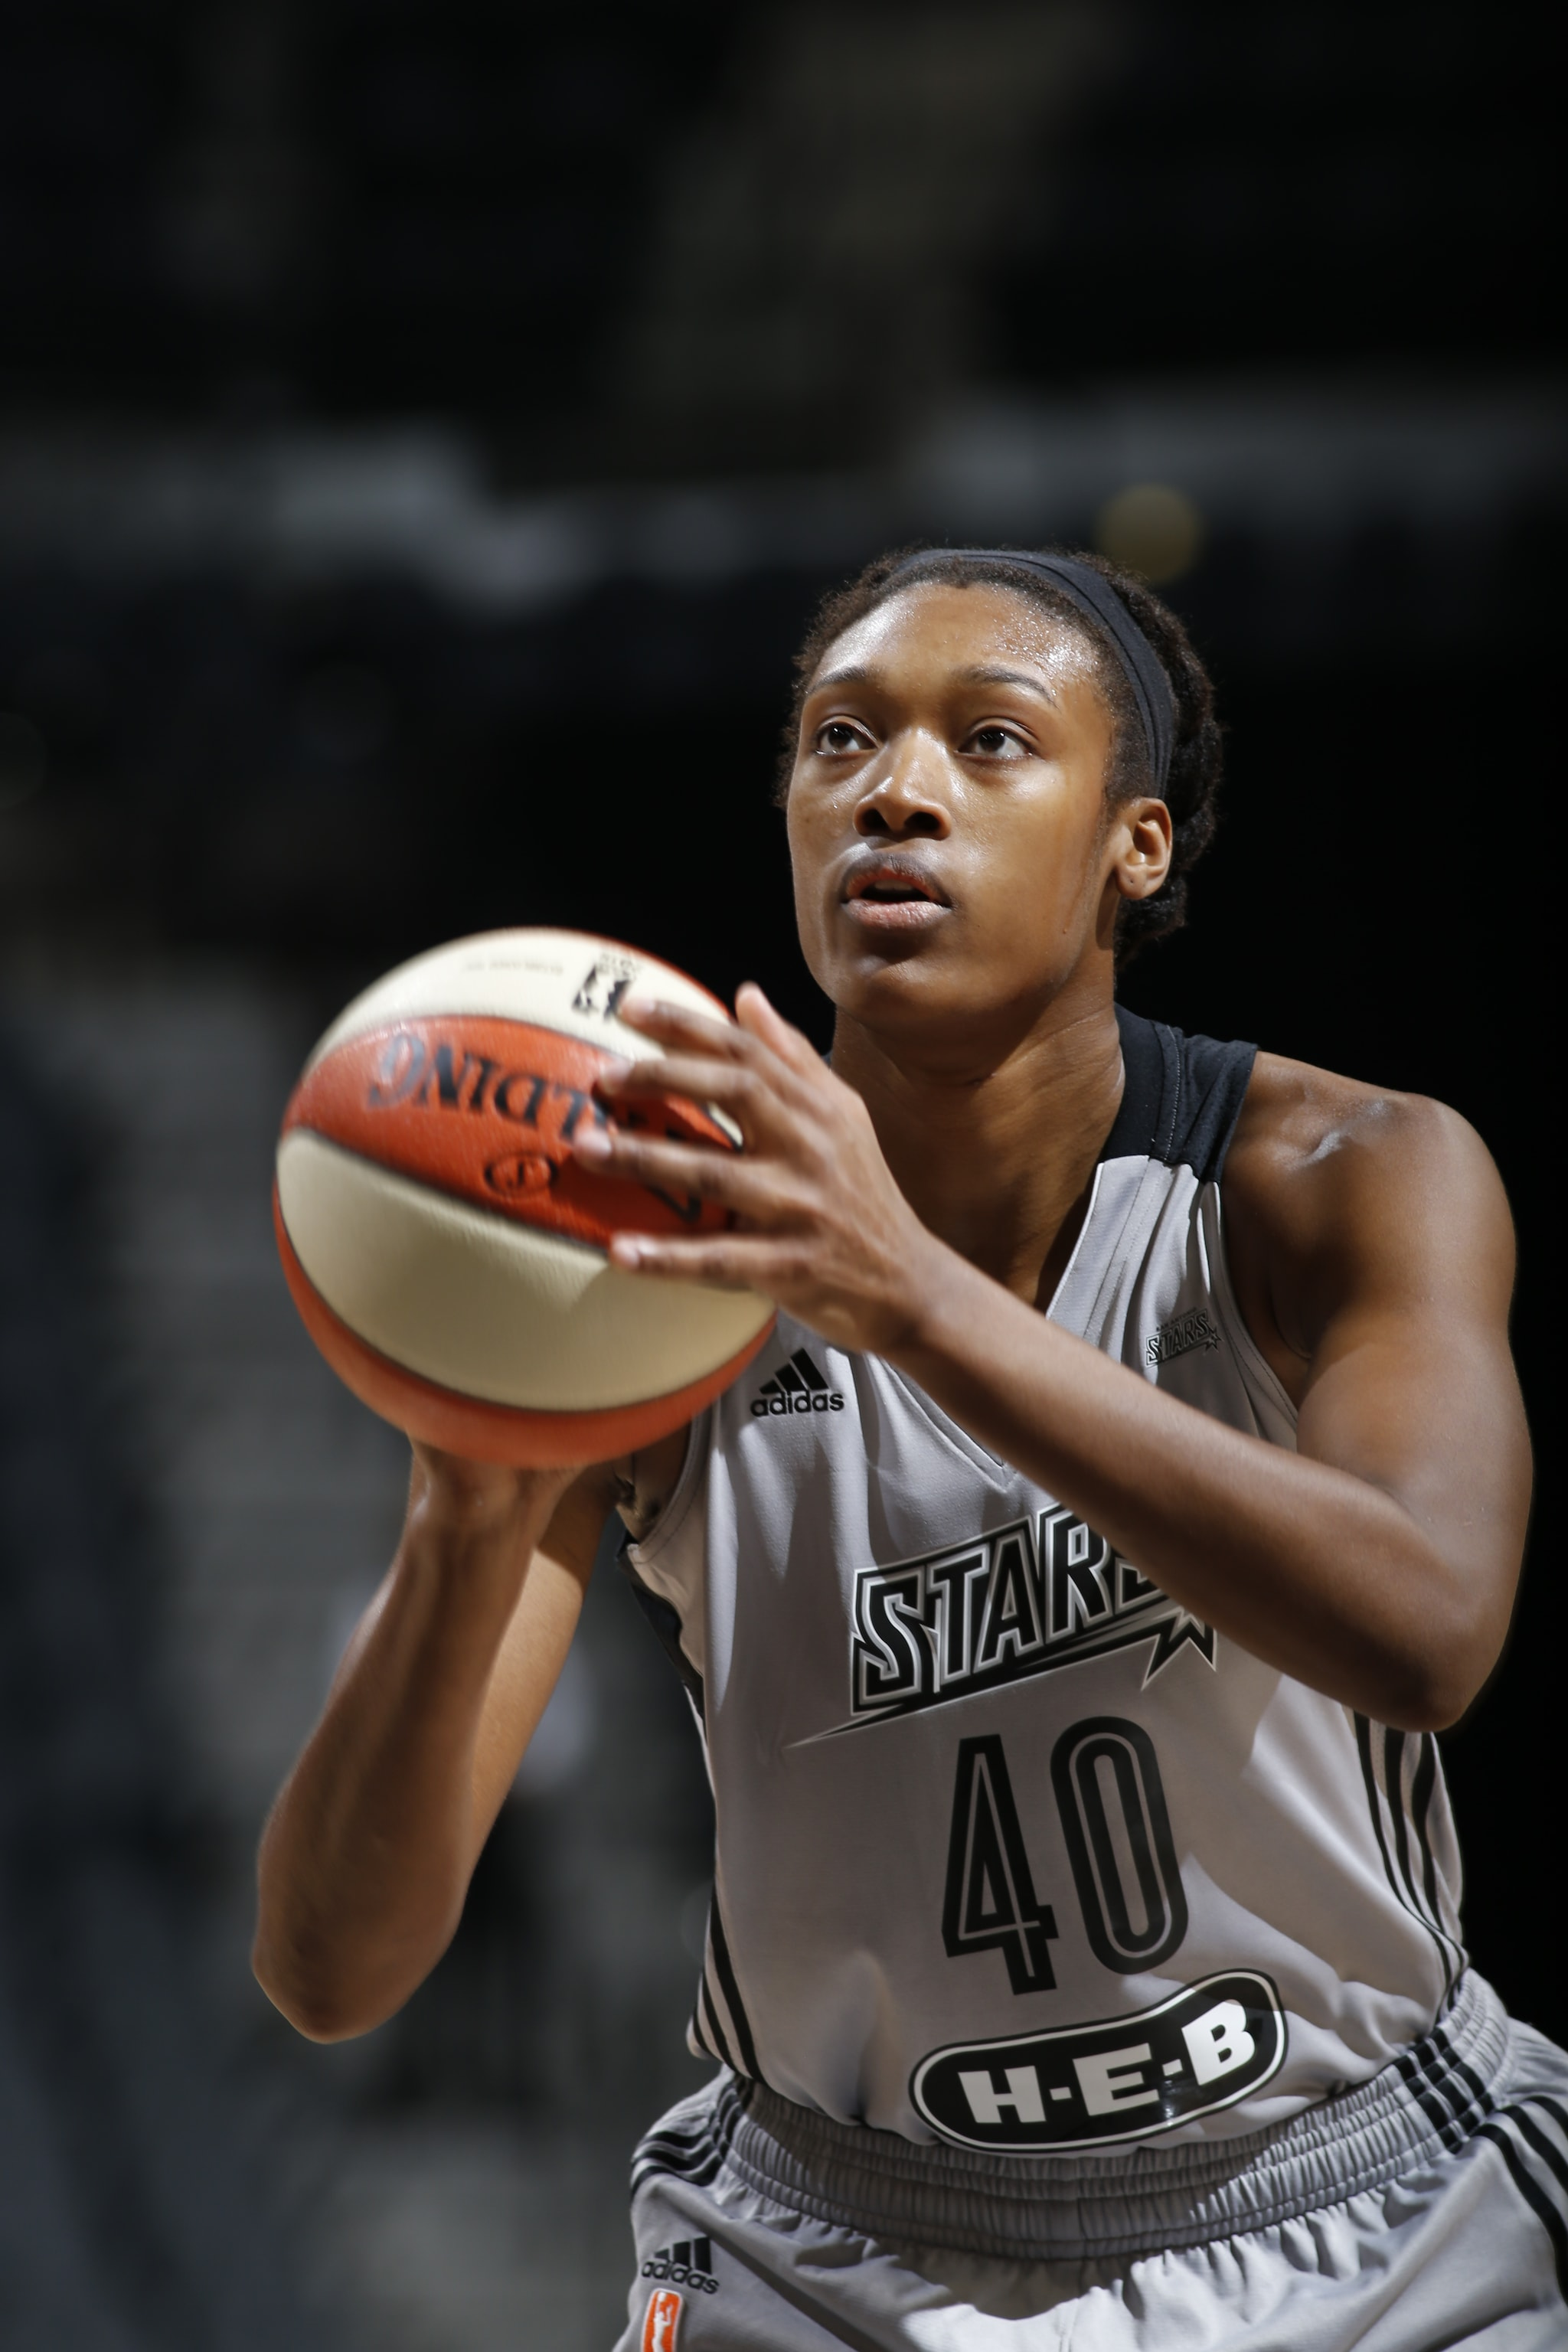 SAN ANTONIO, TX - MAY 9: Kayla Alexander #40 of the San Antonio Stars shoots a free throw against the Los Angeles Sparks on May 9, 2016 at the AT&T Center in San Antonio, Texas. NOTE TO USER: User expressly acknowledges and agrees that, by downloading and or using this photograph, user is consenting to the terms and conditions of the Getty Images License Agreement. Mandatory Copyright Notice: Copyright 2016 NBAE (Photos by Chris Covatta/NBAE via Getty Images)